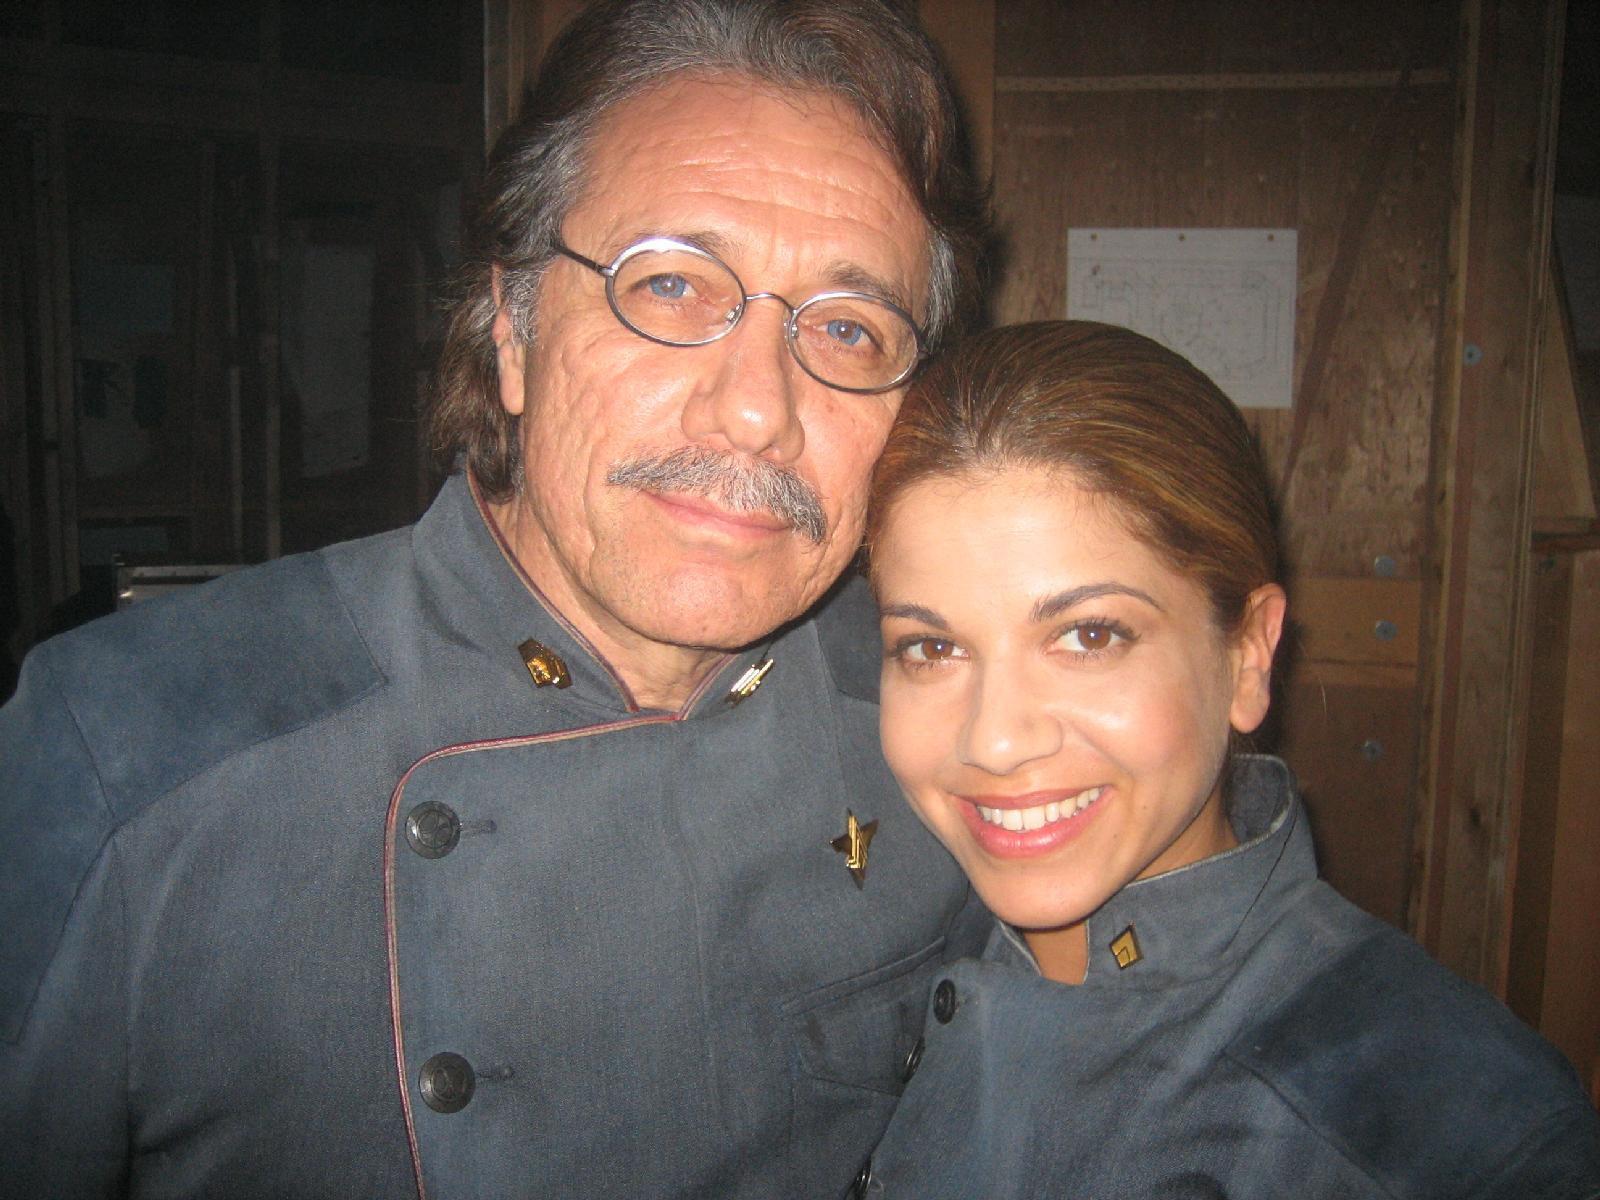 bodie olmos stand and deliverbodie olmos net worth, bodie olmos images, bodie olmos edward james olmos, bodie olmos stand and deliver, bodie olmos imdb, боди олмос, bodie olmos actor, bodie olmos pictures, bodie olmos wikipedia, bodie olmos twitter, bodie olmos gay, bodie olmos photos